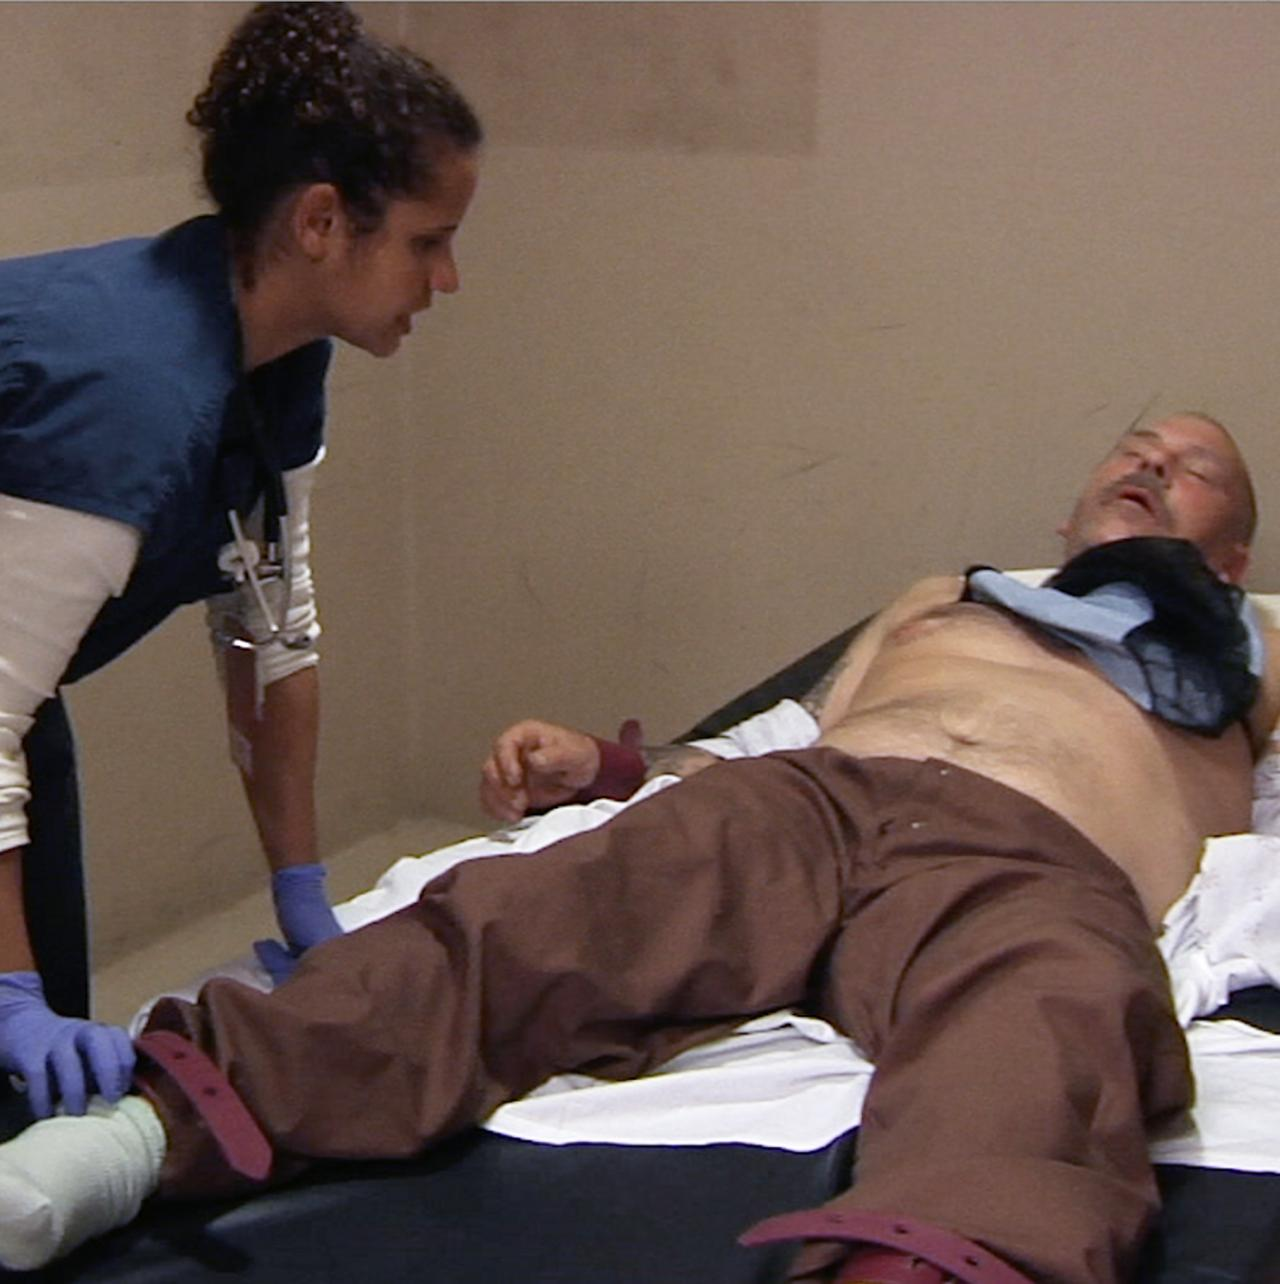 female medical professional stands over prone male patient